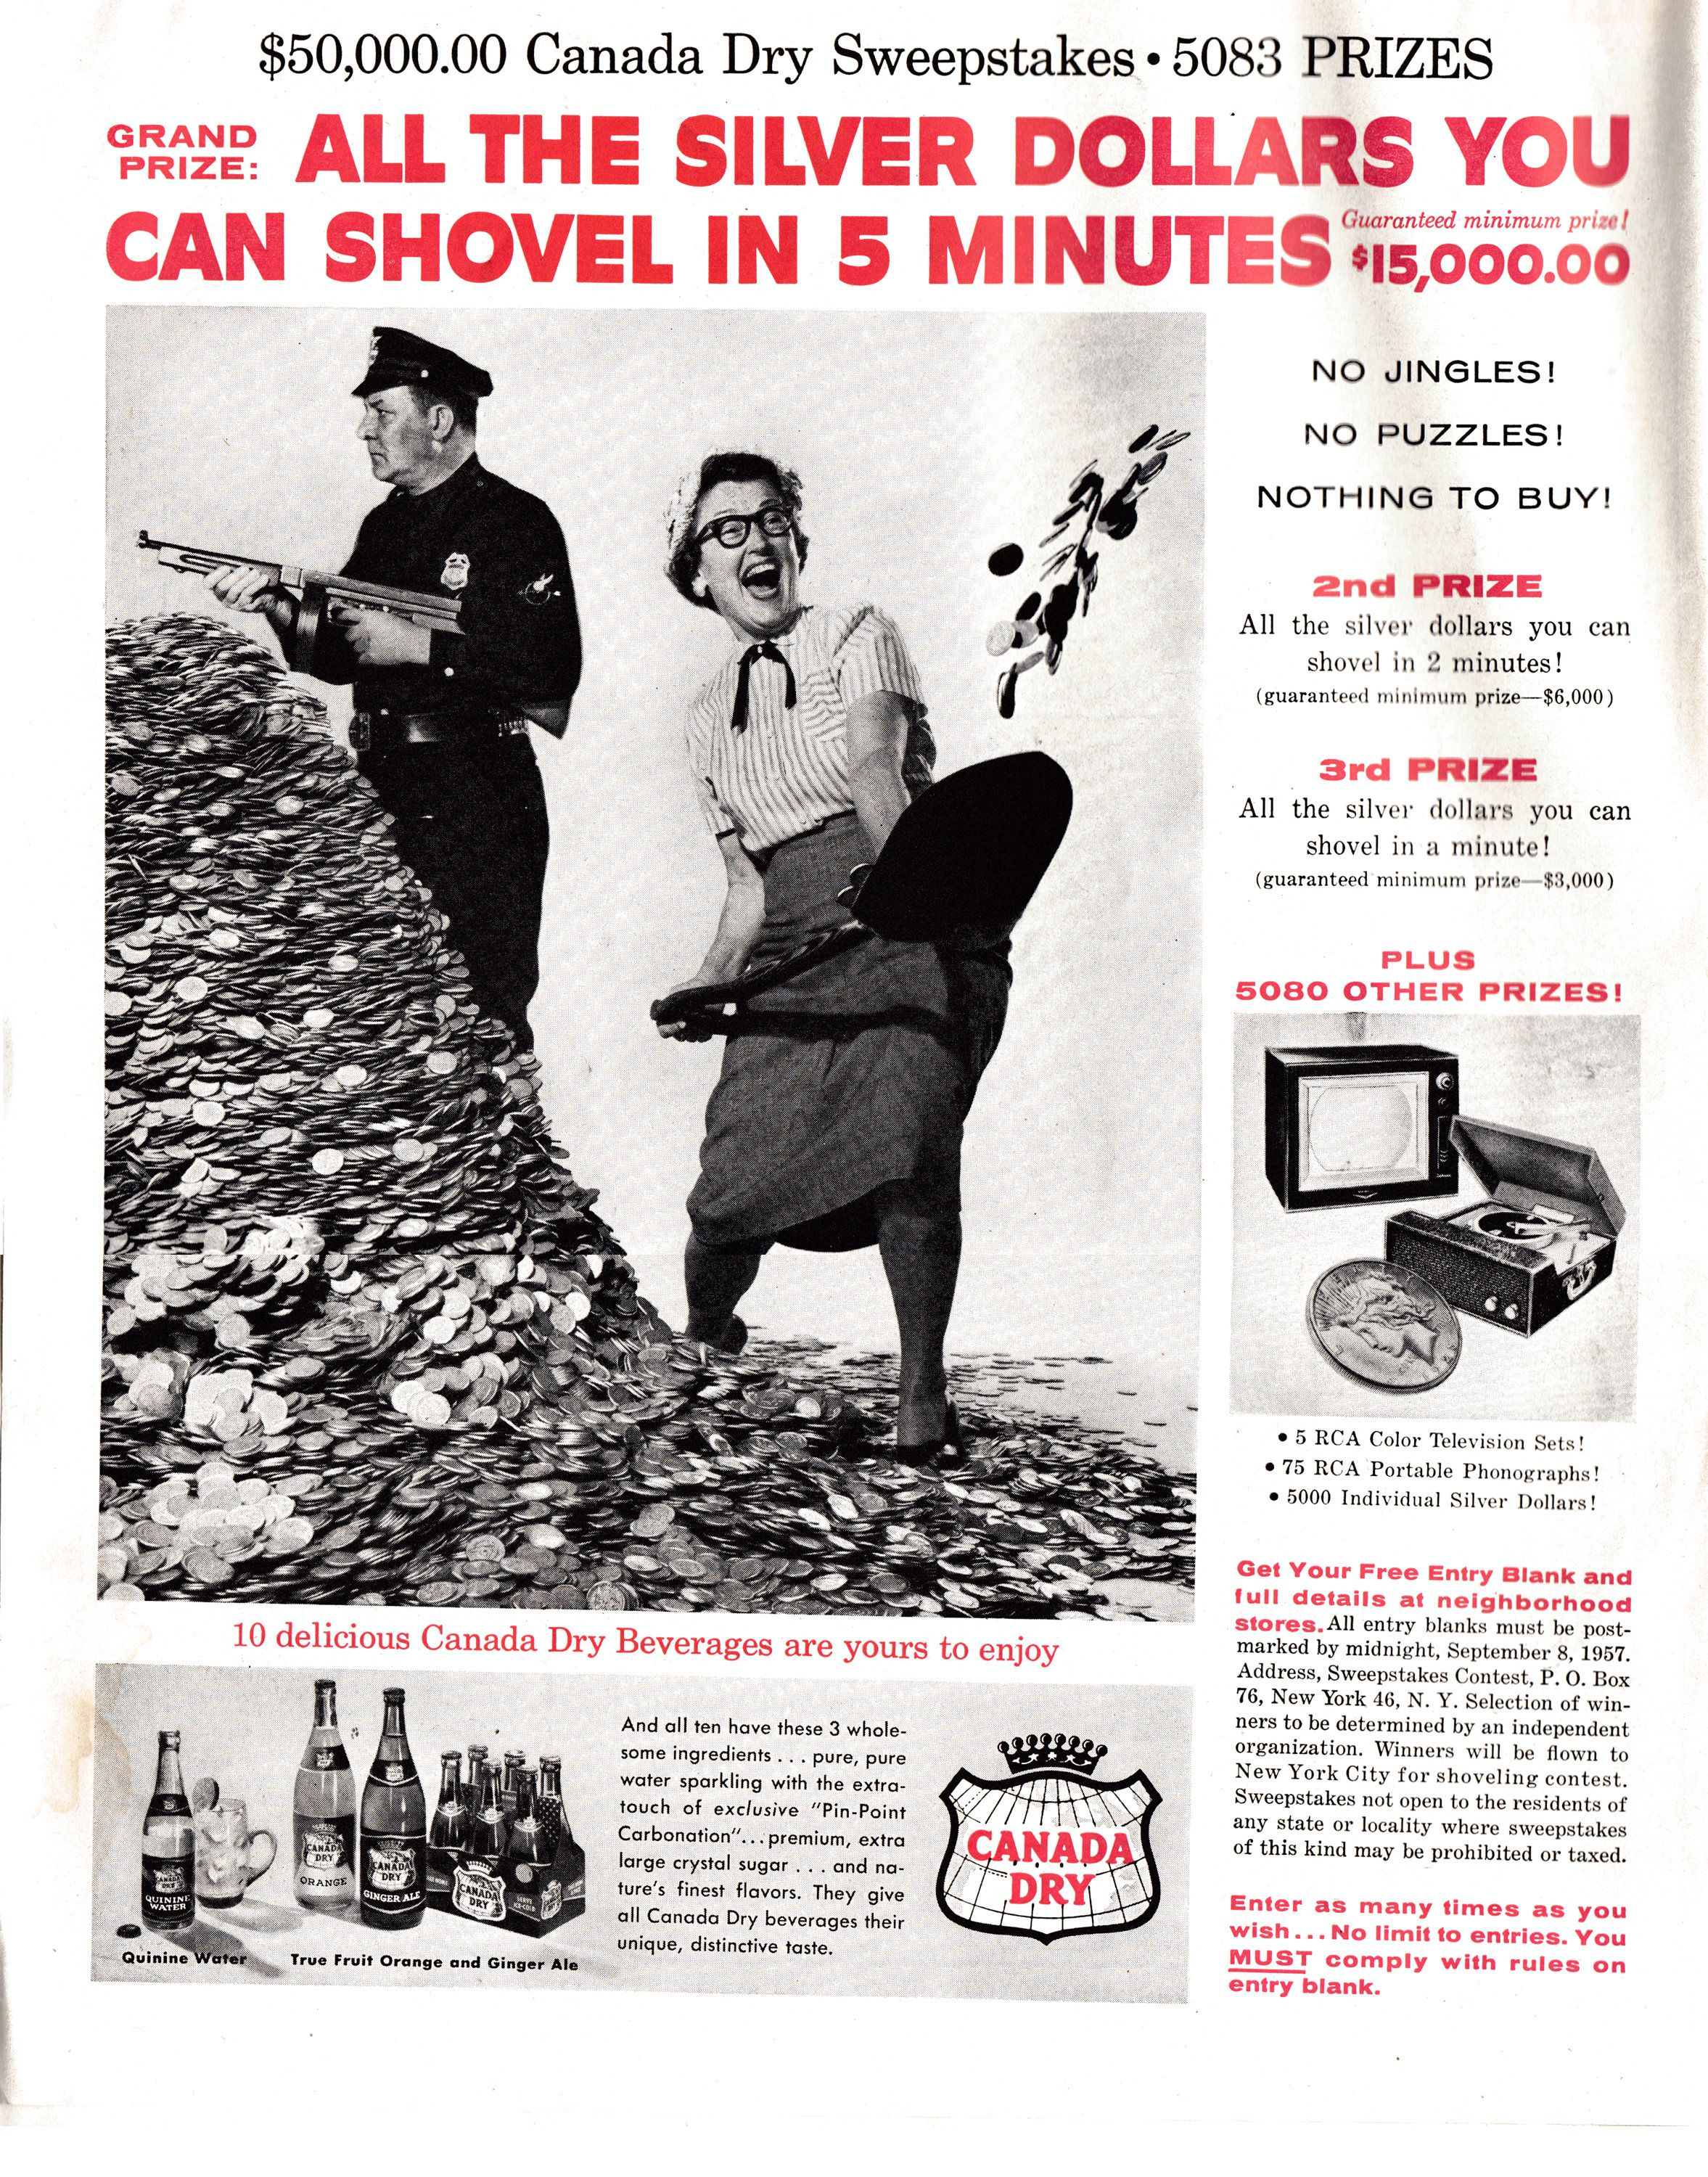 1957 Canada Dry-Contest-Shovel Silver Dollars for 5 Minutes